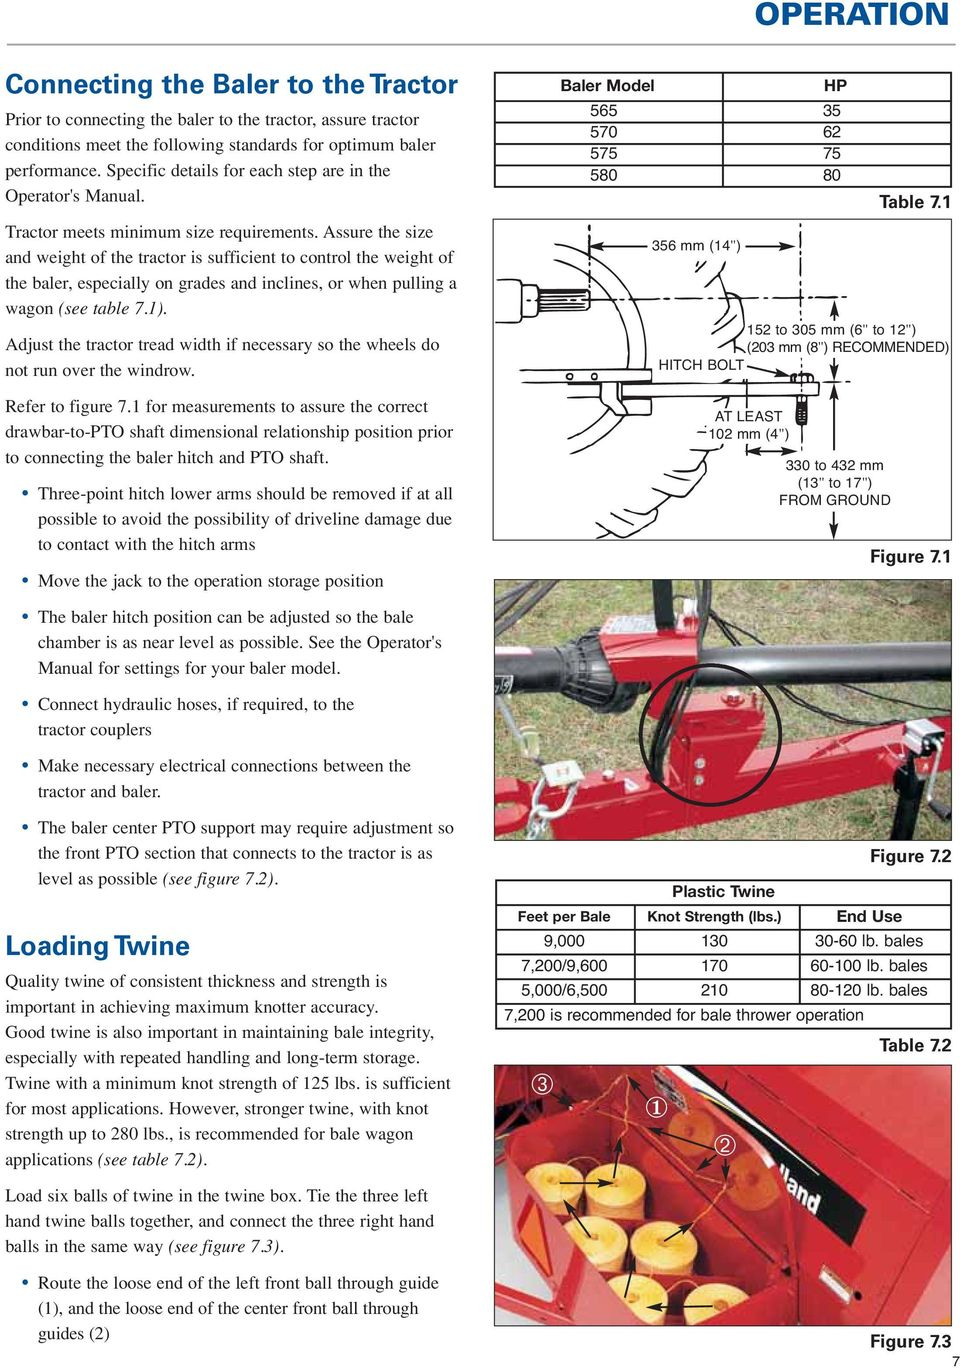 new holland 570 575 baler operators manual rh new holland 570 575 baler operators manual te LifeWatch Helicopter LifeWatch Vest